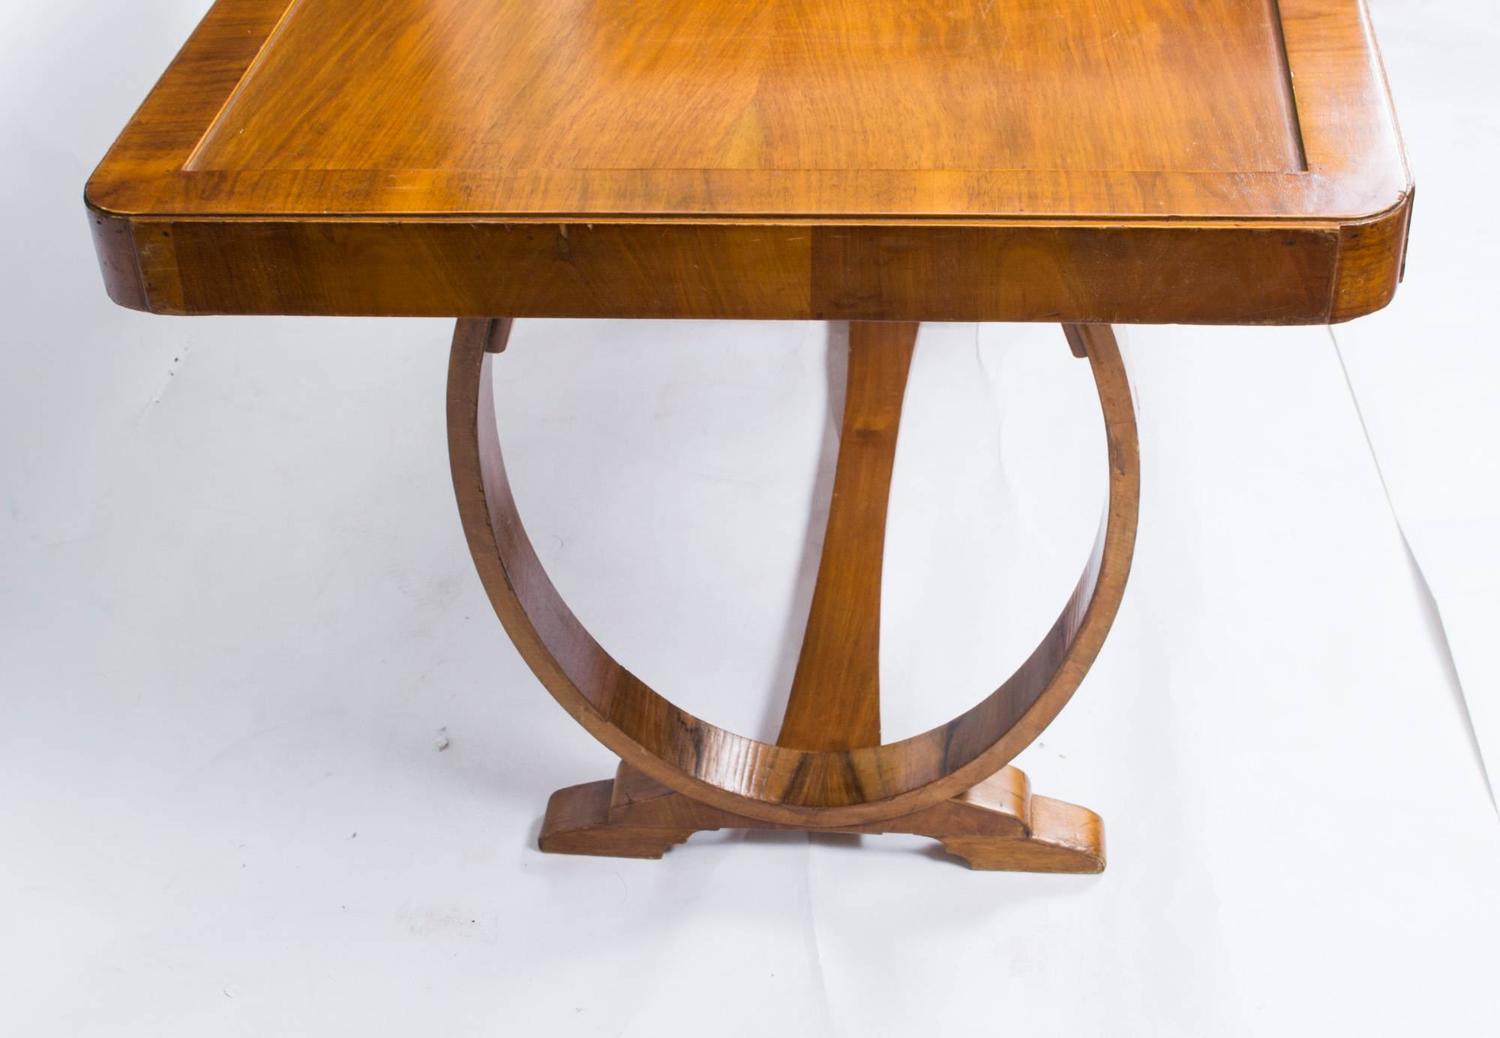 Antique Art Deco Dining Table And Six Chairs Circa 1930 For Sale At